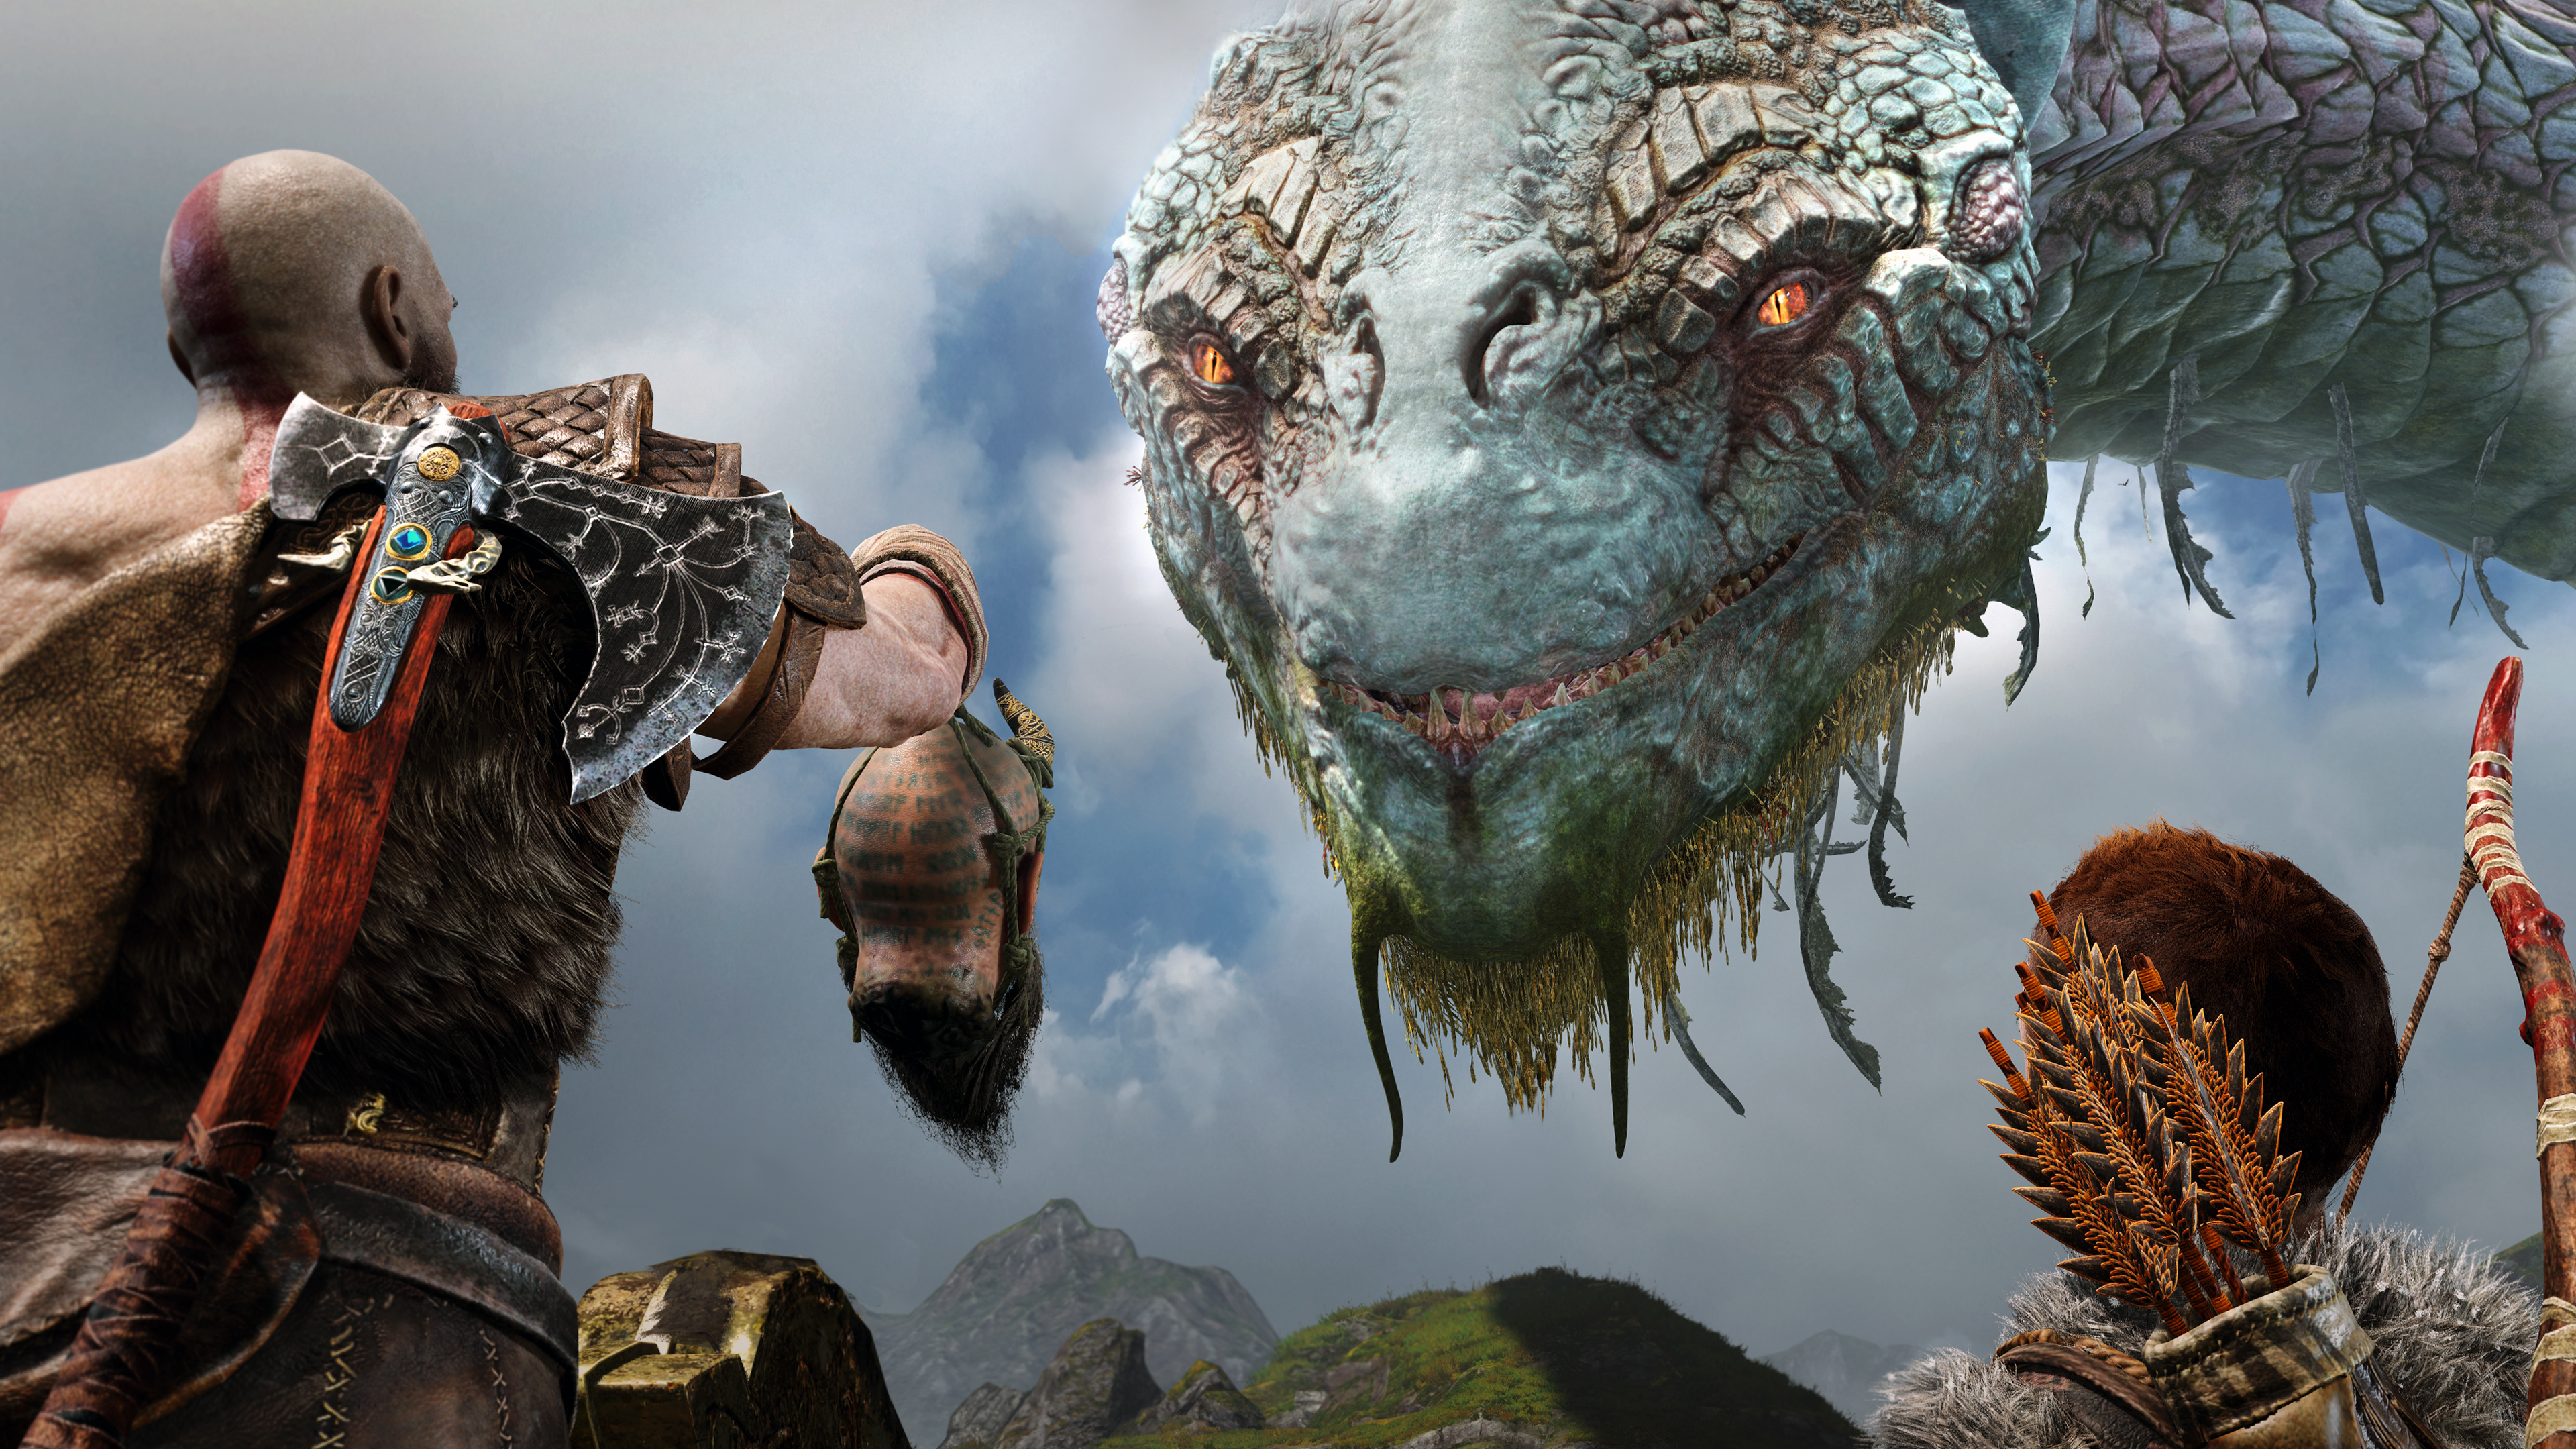 1680x1050 God Of War 4 2018 4k 1680x1050 Resolution Hd 4k